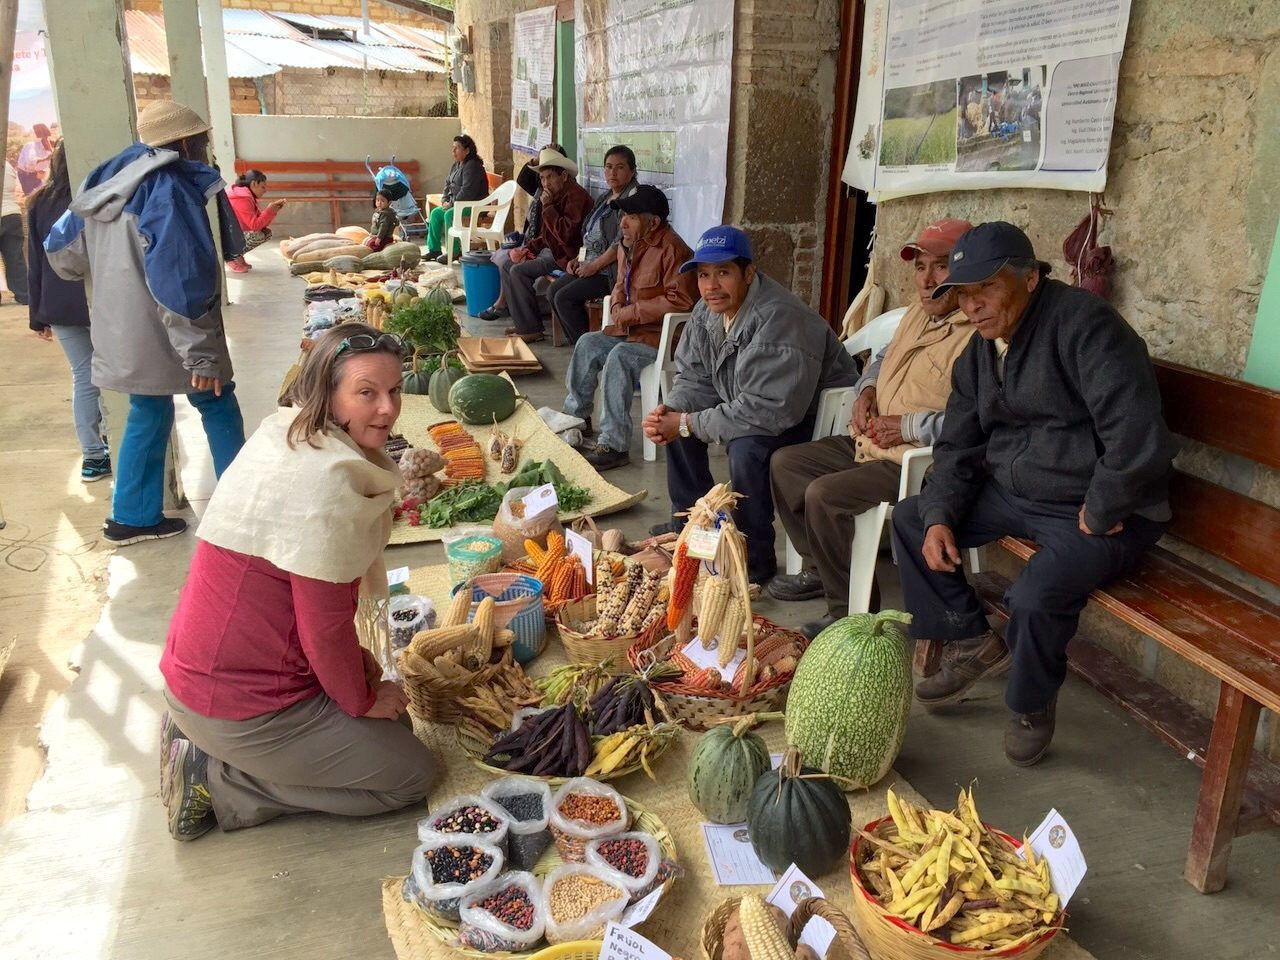 Martha Willcox (left) with farmers and their milpa products in Santa María Yavesía, Oaxaca state, México. (Photo: Arturo Silva/CIMMYT)